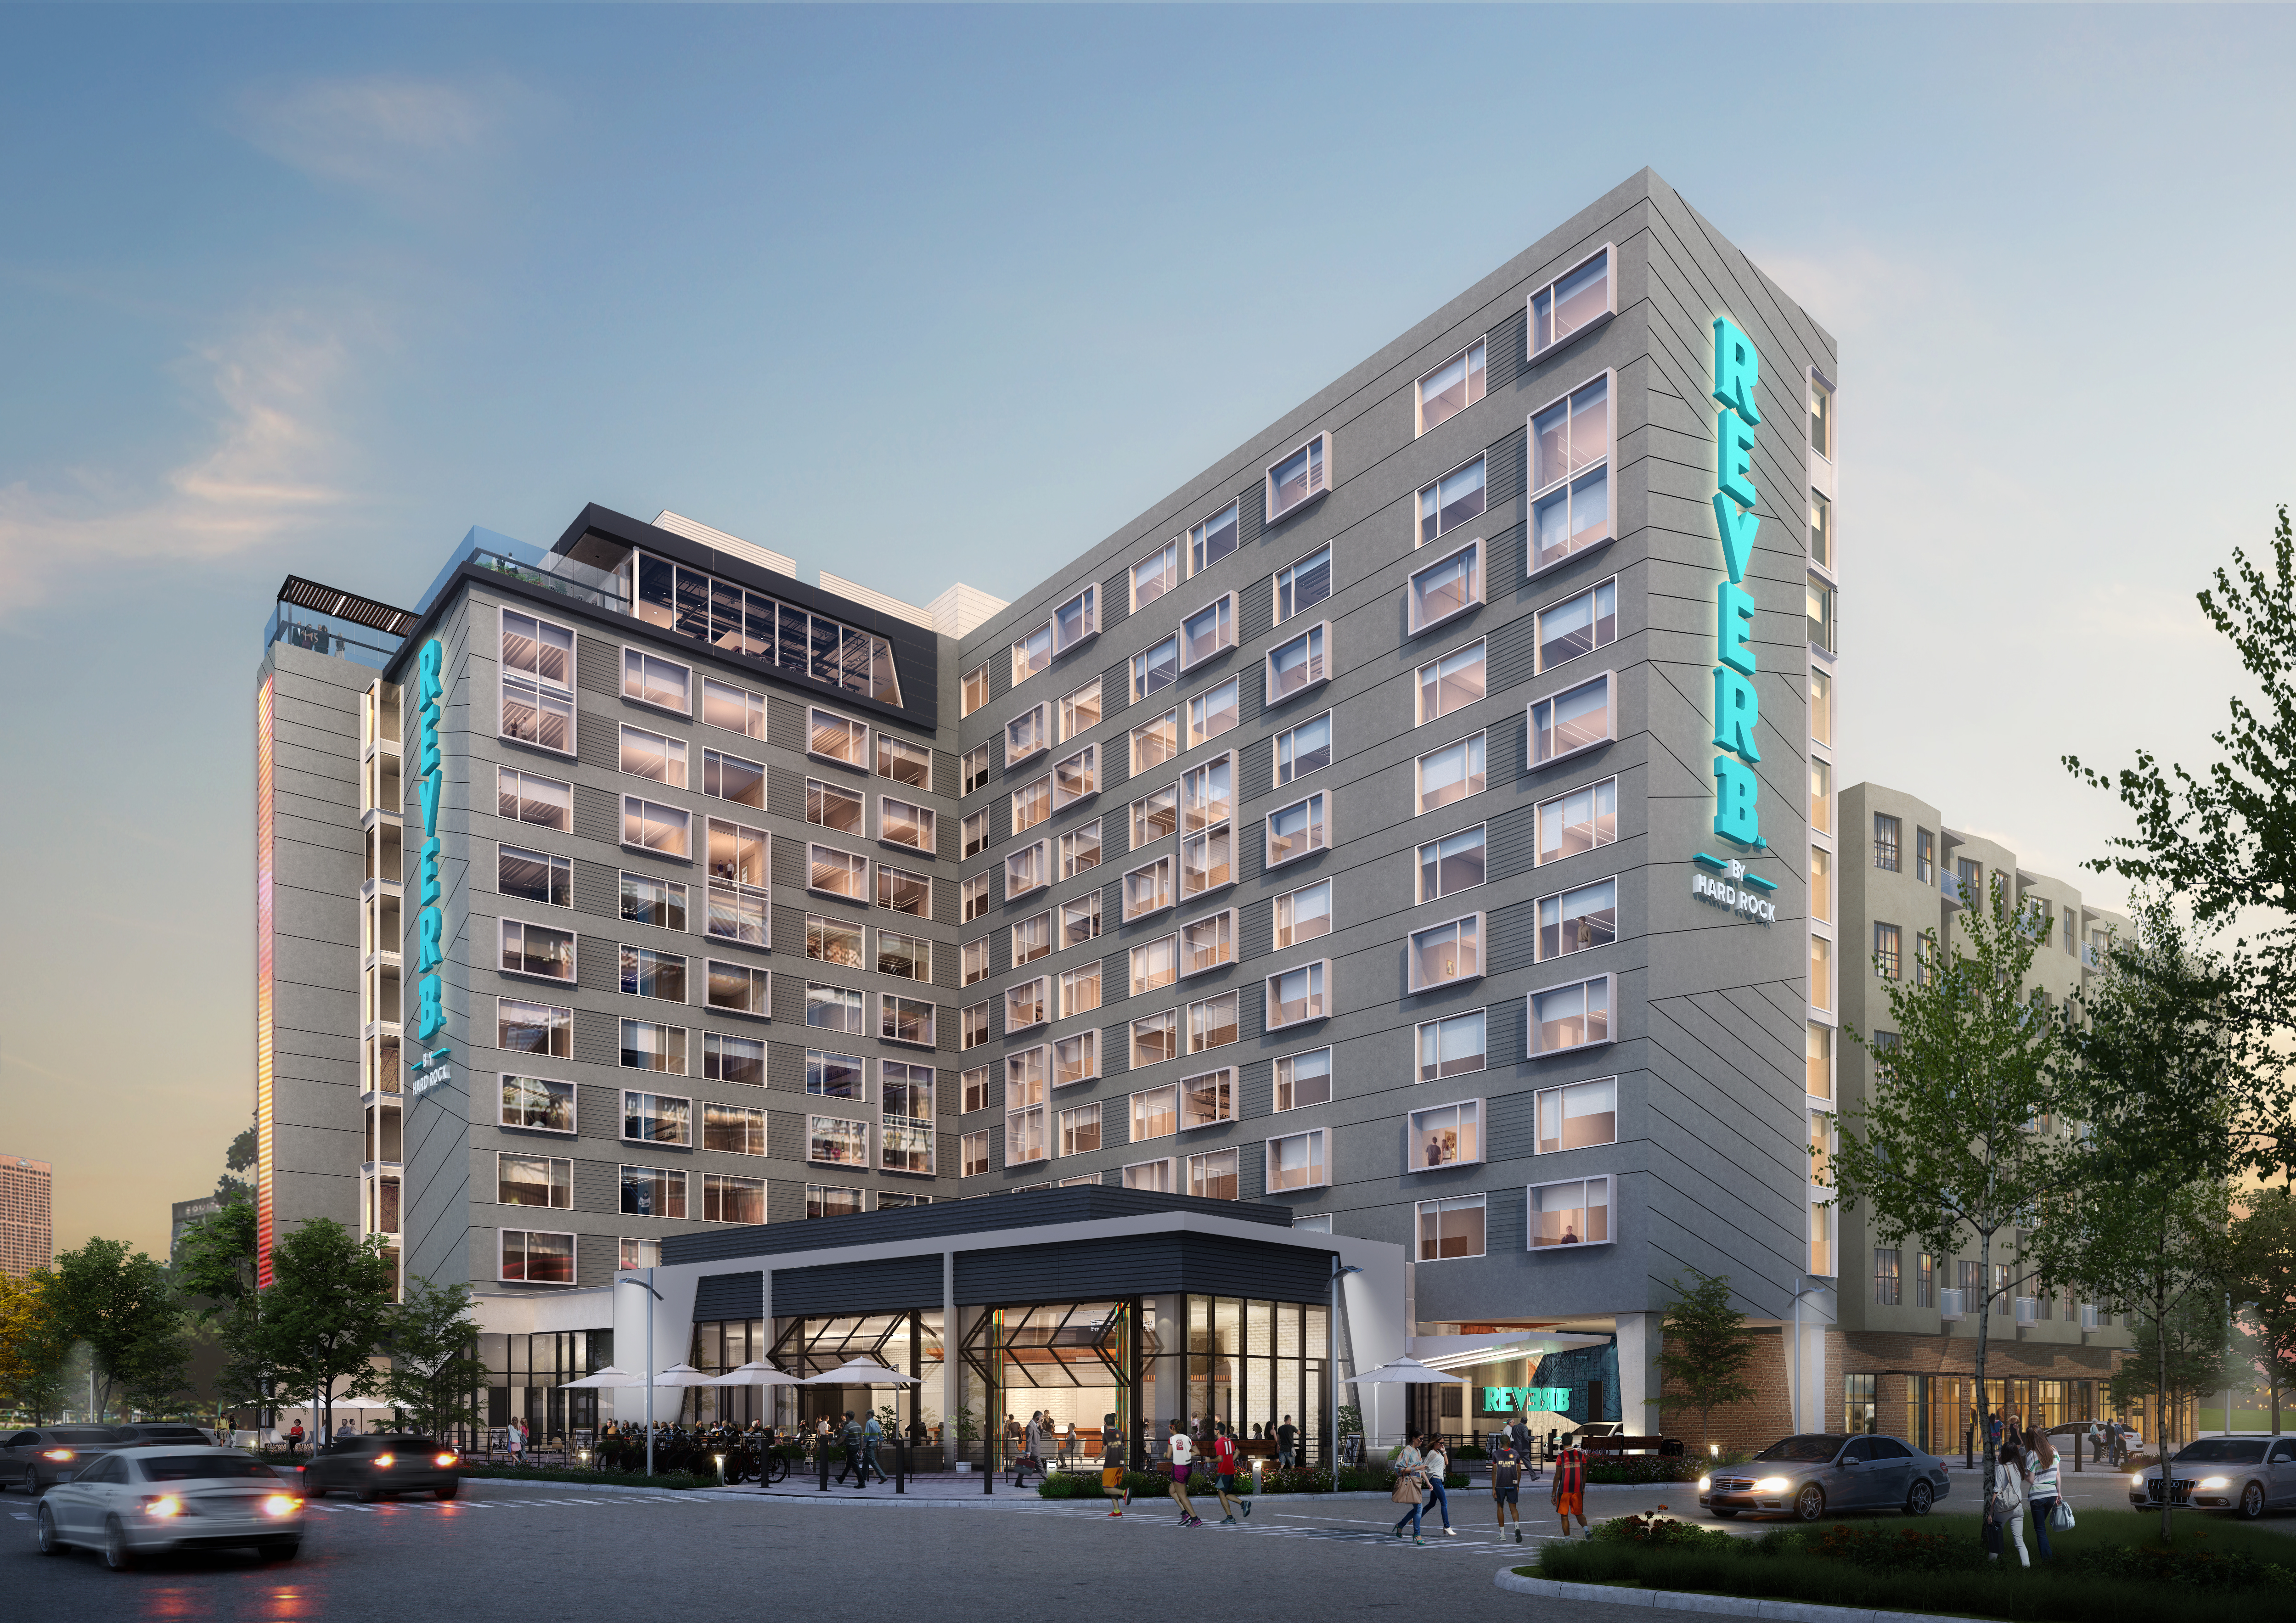 A revised look at the Hard Rock hotel in Castleberry Hill.